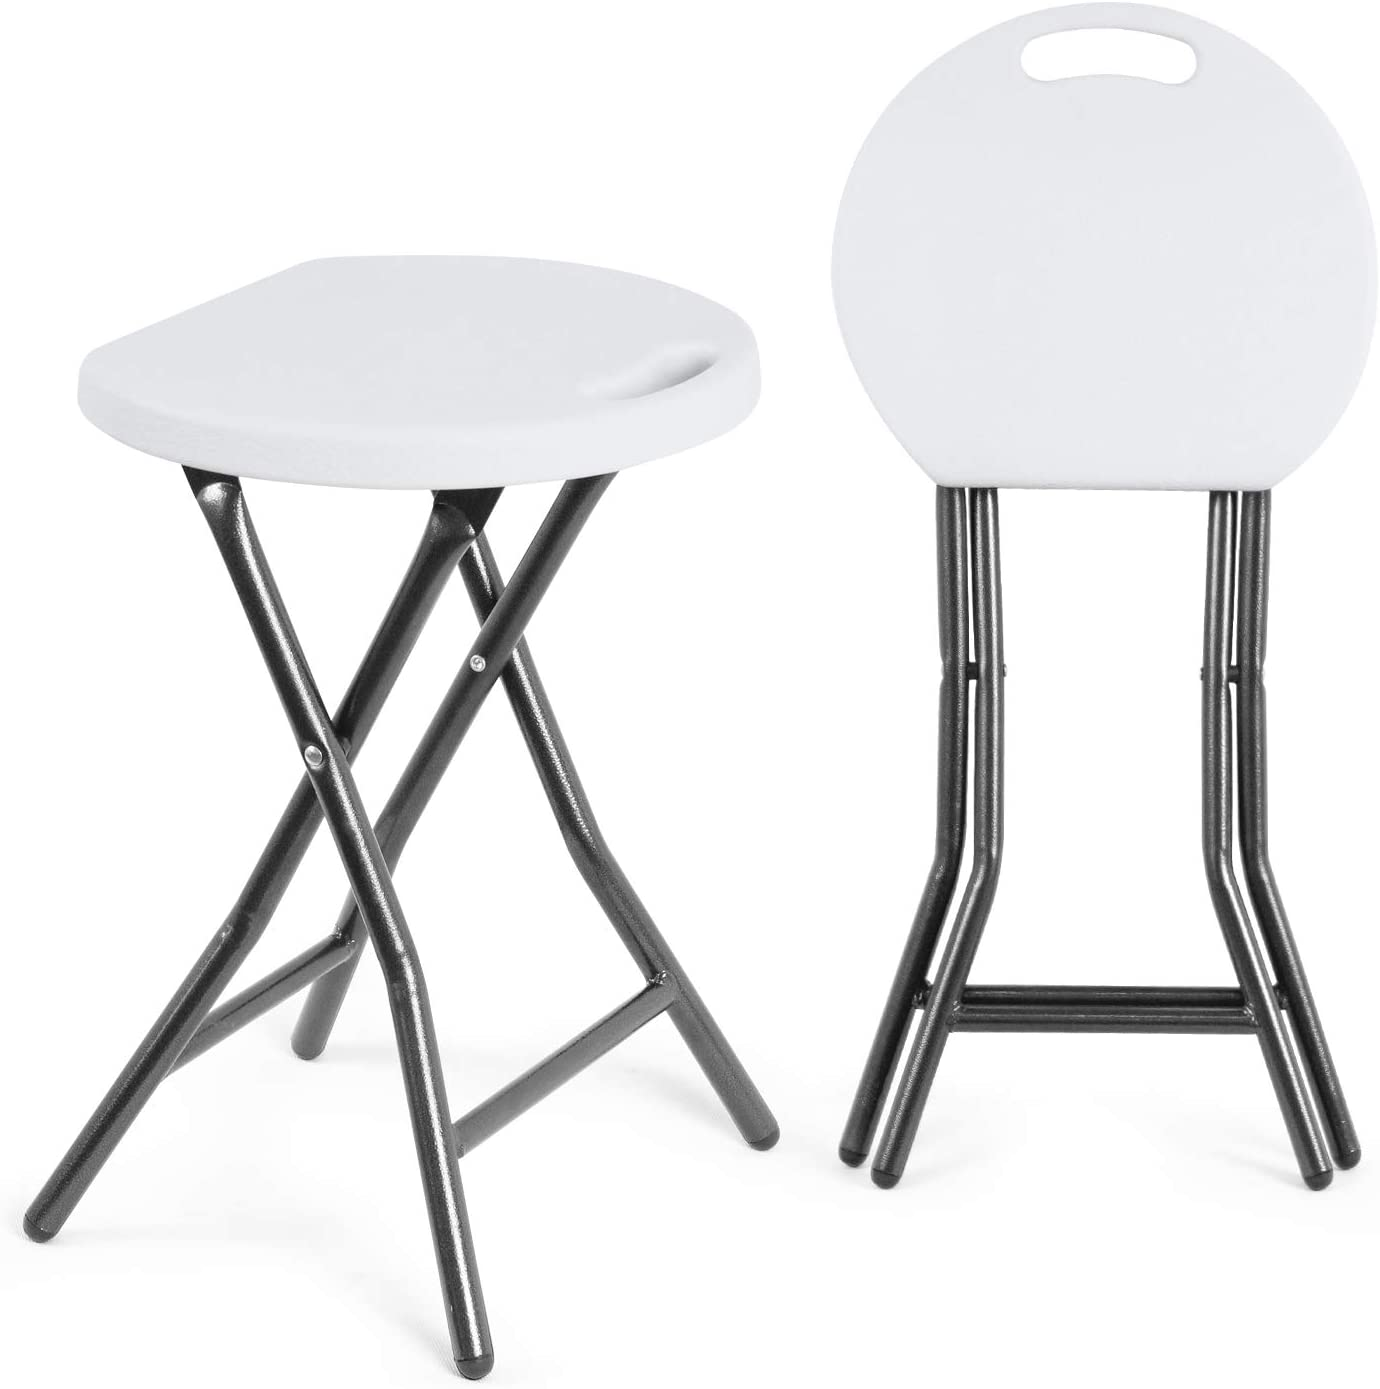 TAVR Portable Folding Stool 18.1 inch Set of 2 Heavy Duty Fold up Stool Foldable Stool for Adults Metal and Plastic Collapsible Round Stool for Kitchen Garden Bathroom,300lbs Capacity,White,CH1003